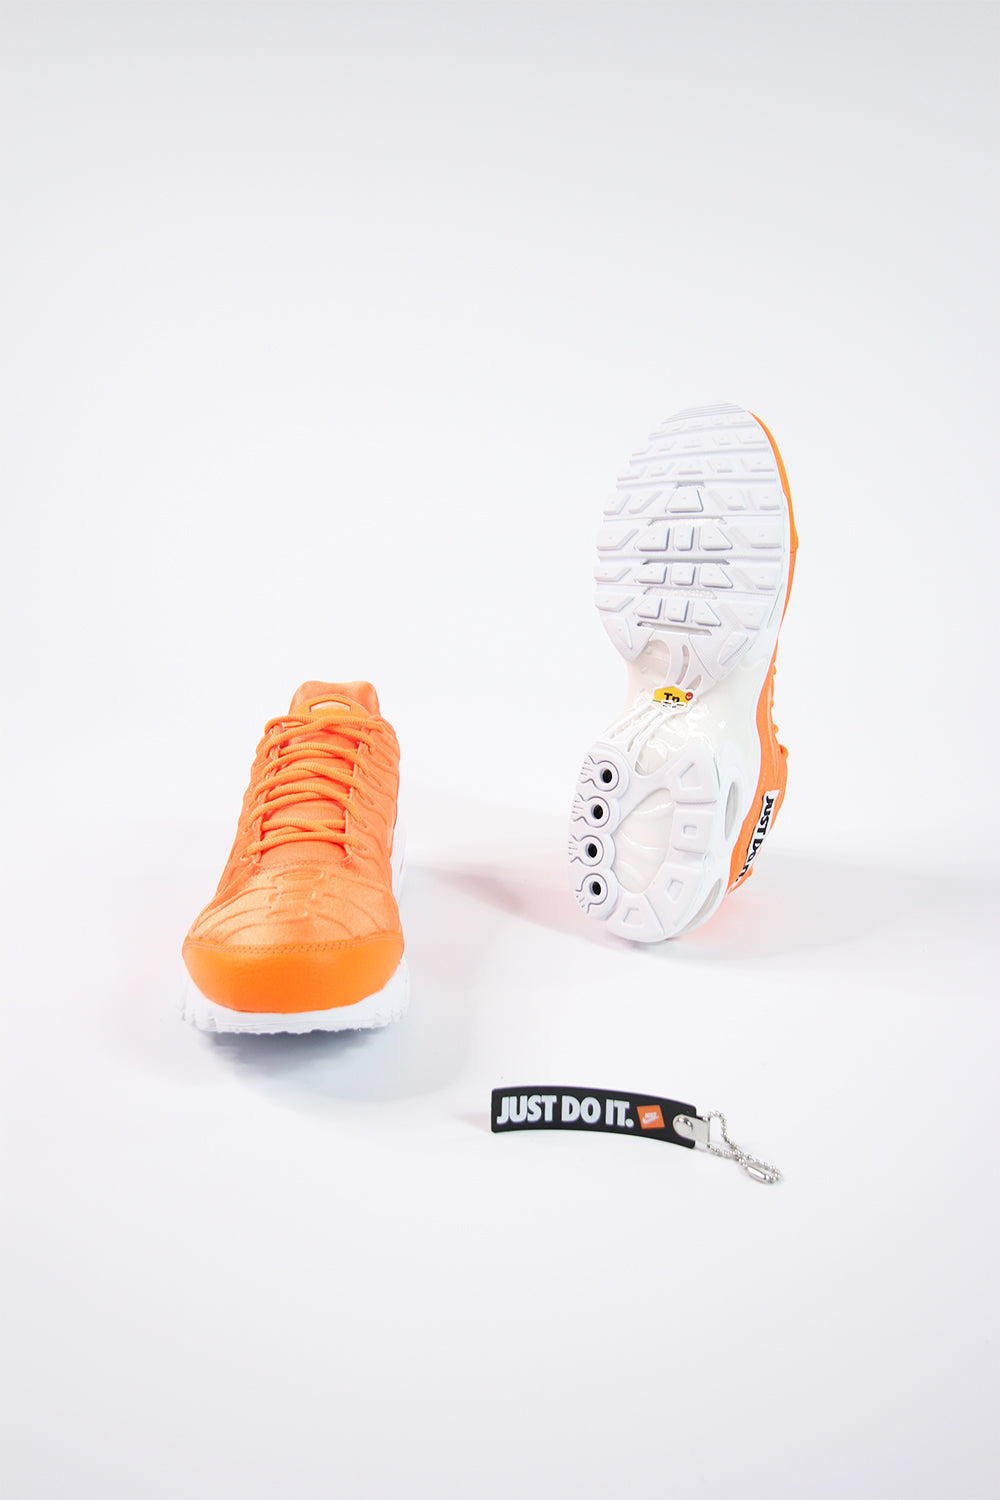 Nike - Air Max Plus SE (Total Orange/White Black) 862201-800